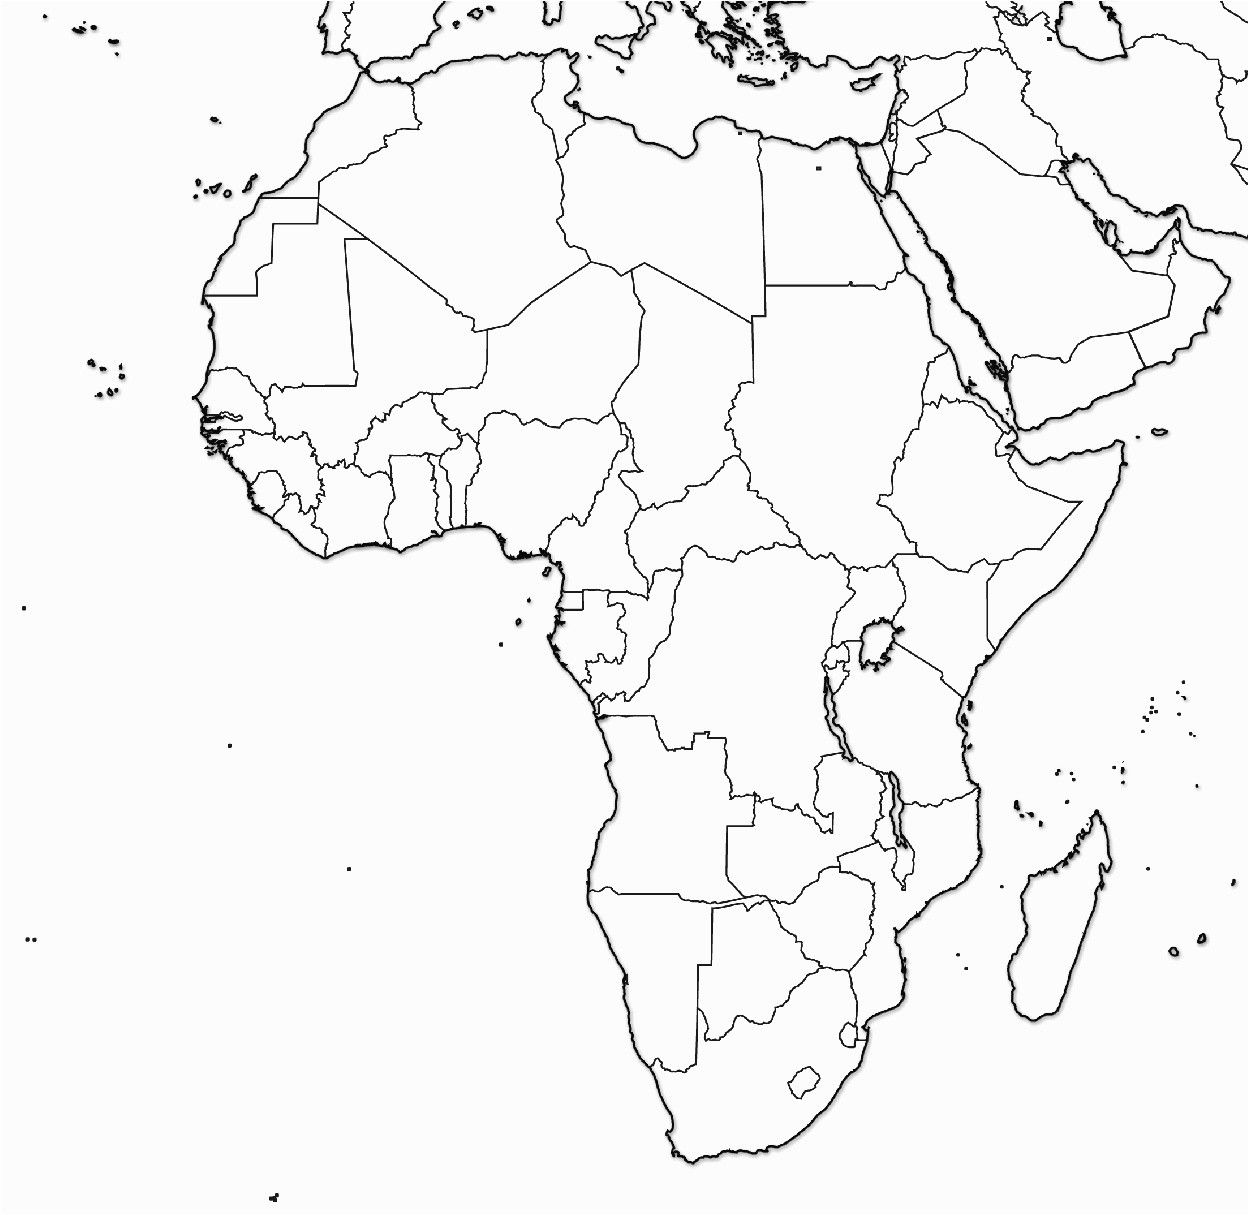 Blank Map Of Africa And Asia Comprehensible Blank Map Of Eurasia And Africa Asia High Res Photo